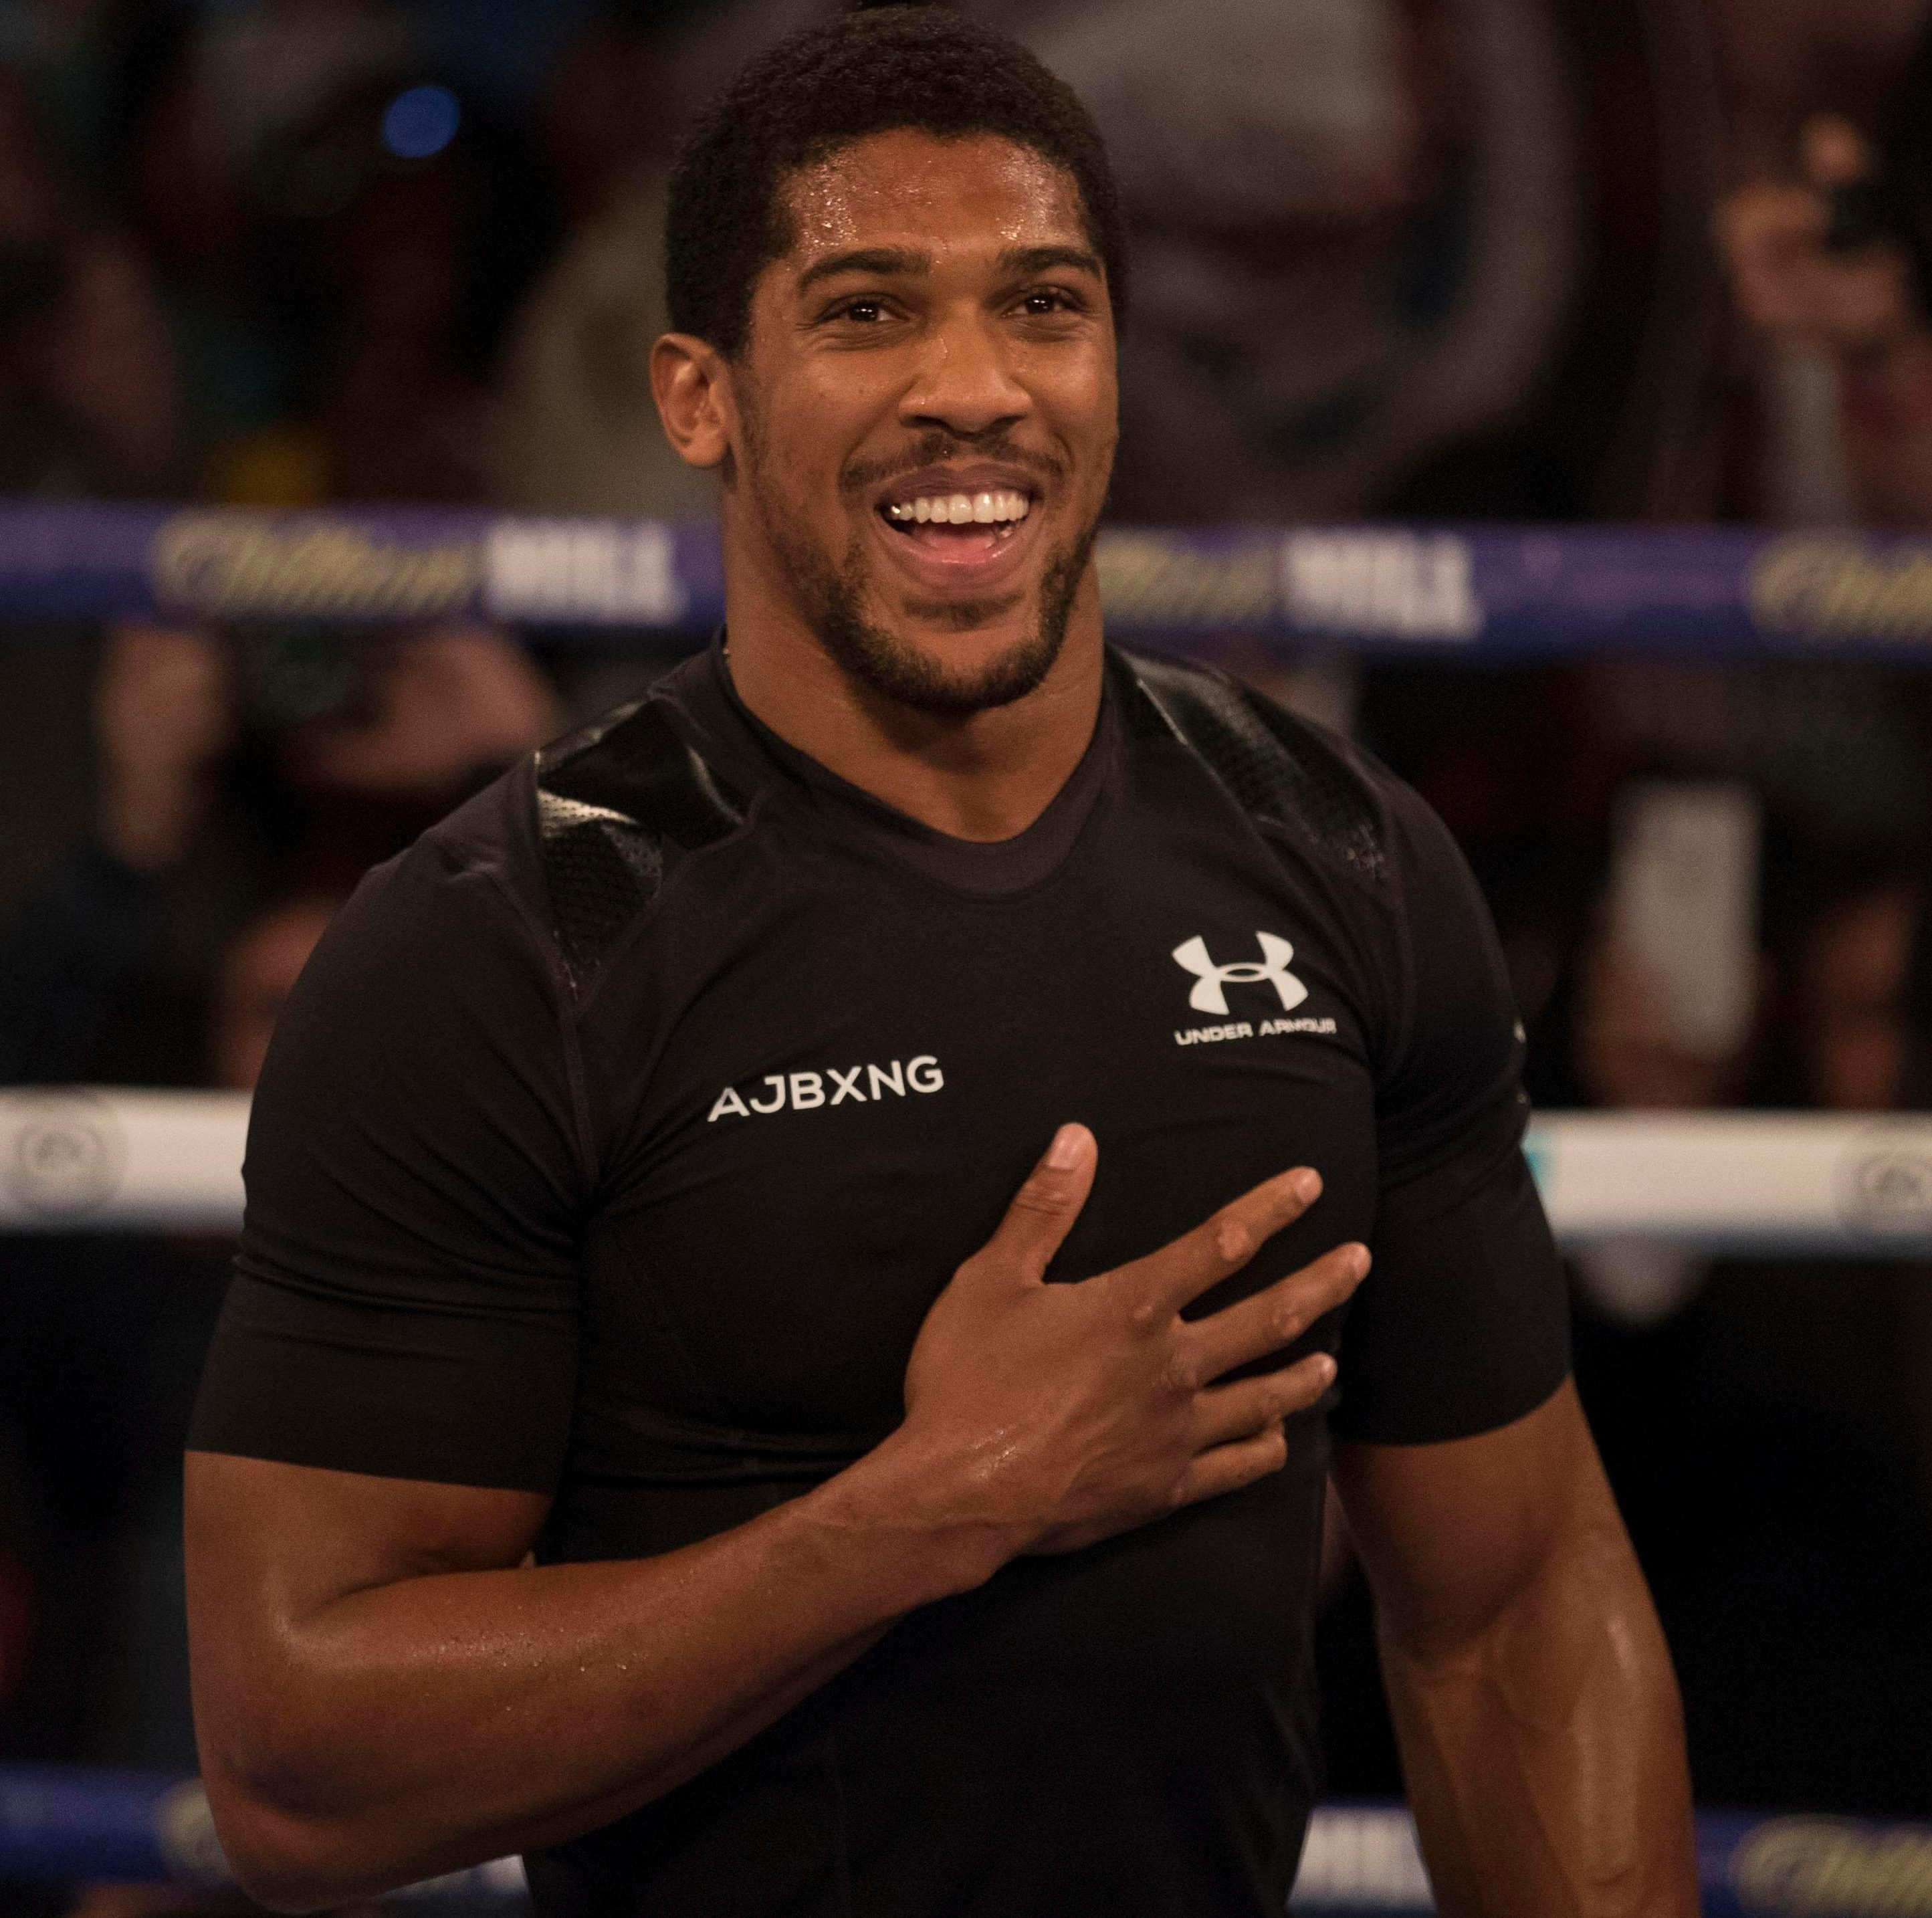 Anthony Joshua delighted fans during an open workout at York Hall - but wasn't in the ring for long